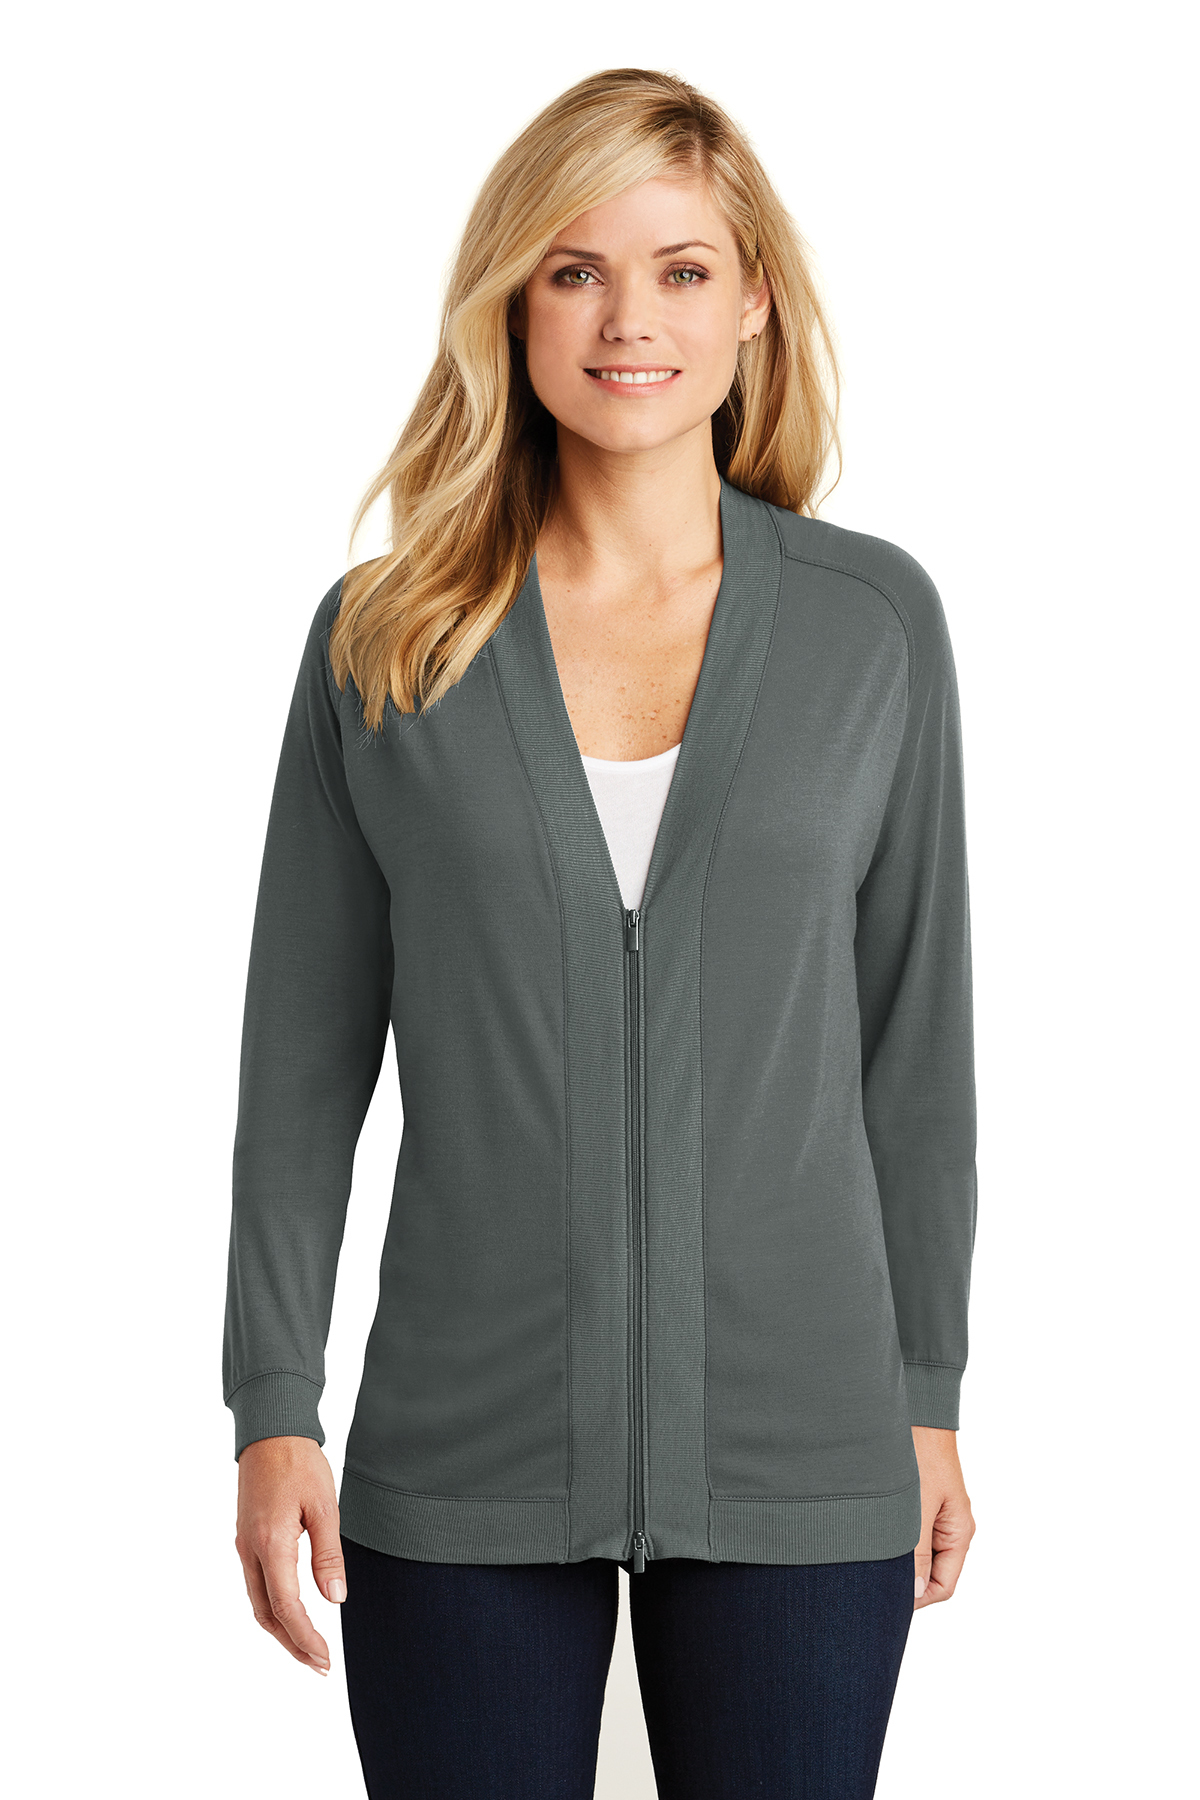 Port Authority LK5431 - Ladies Concept Bomber Cardigan